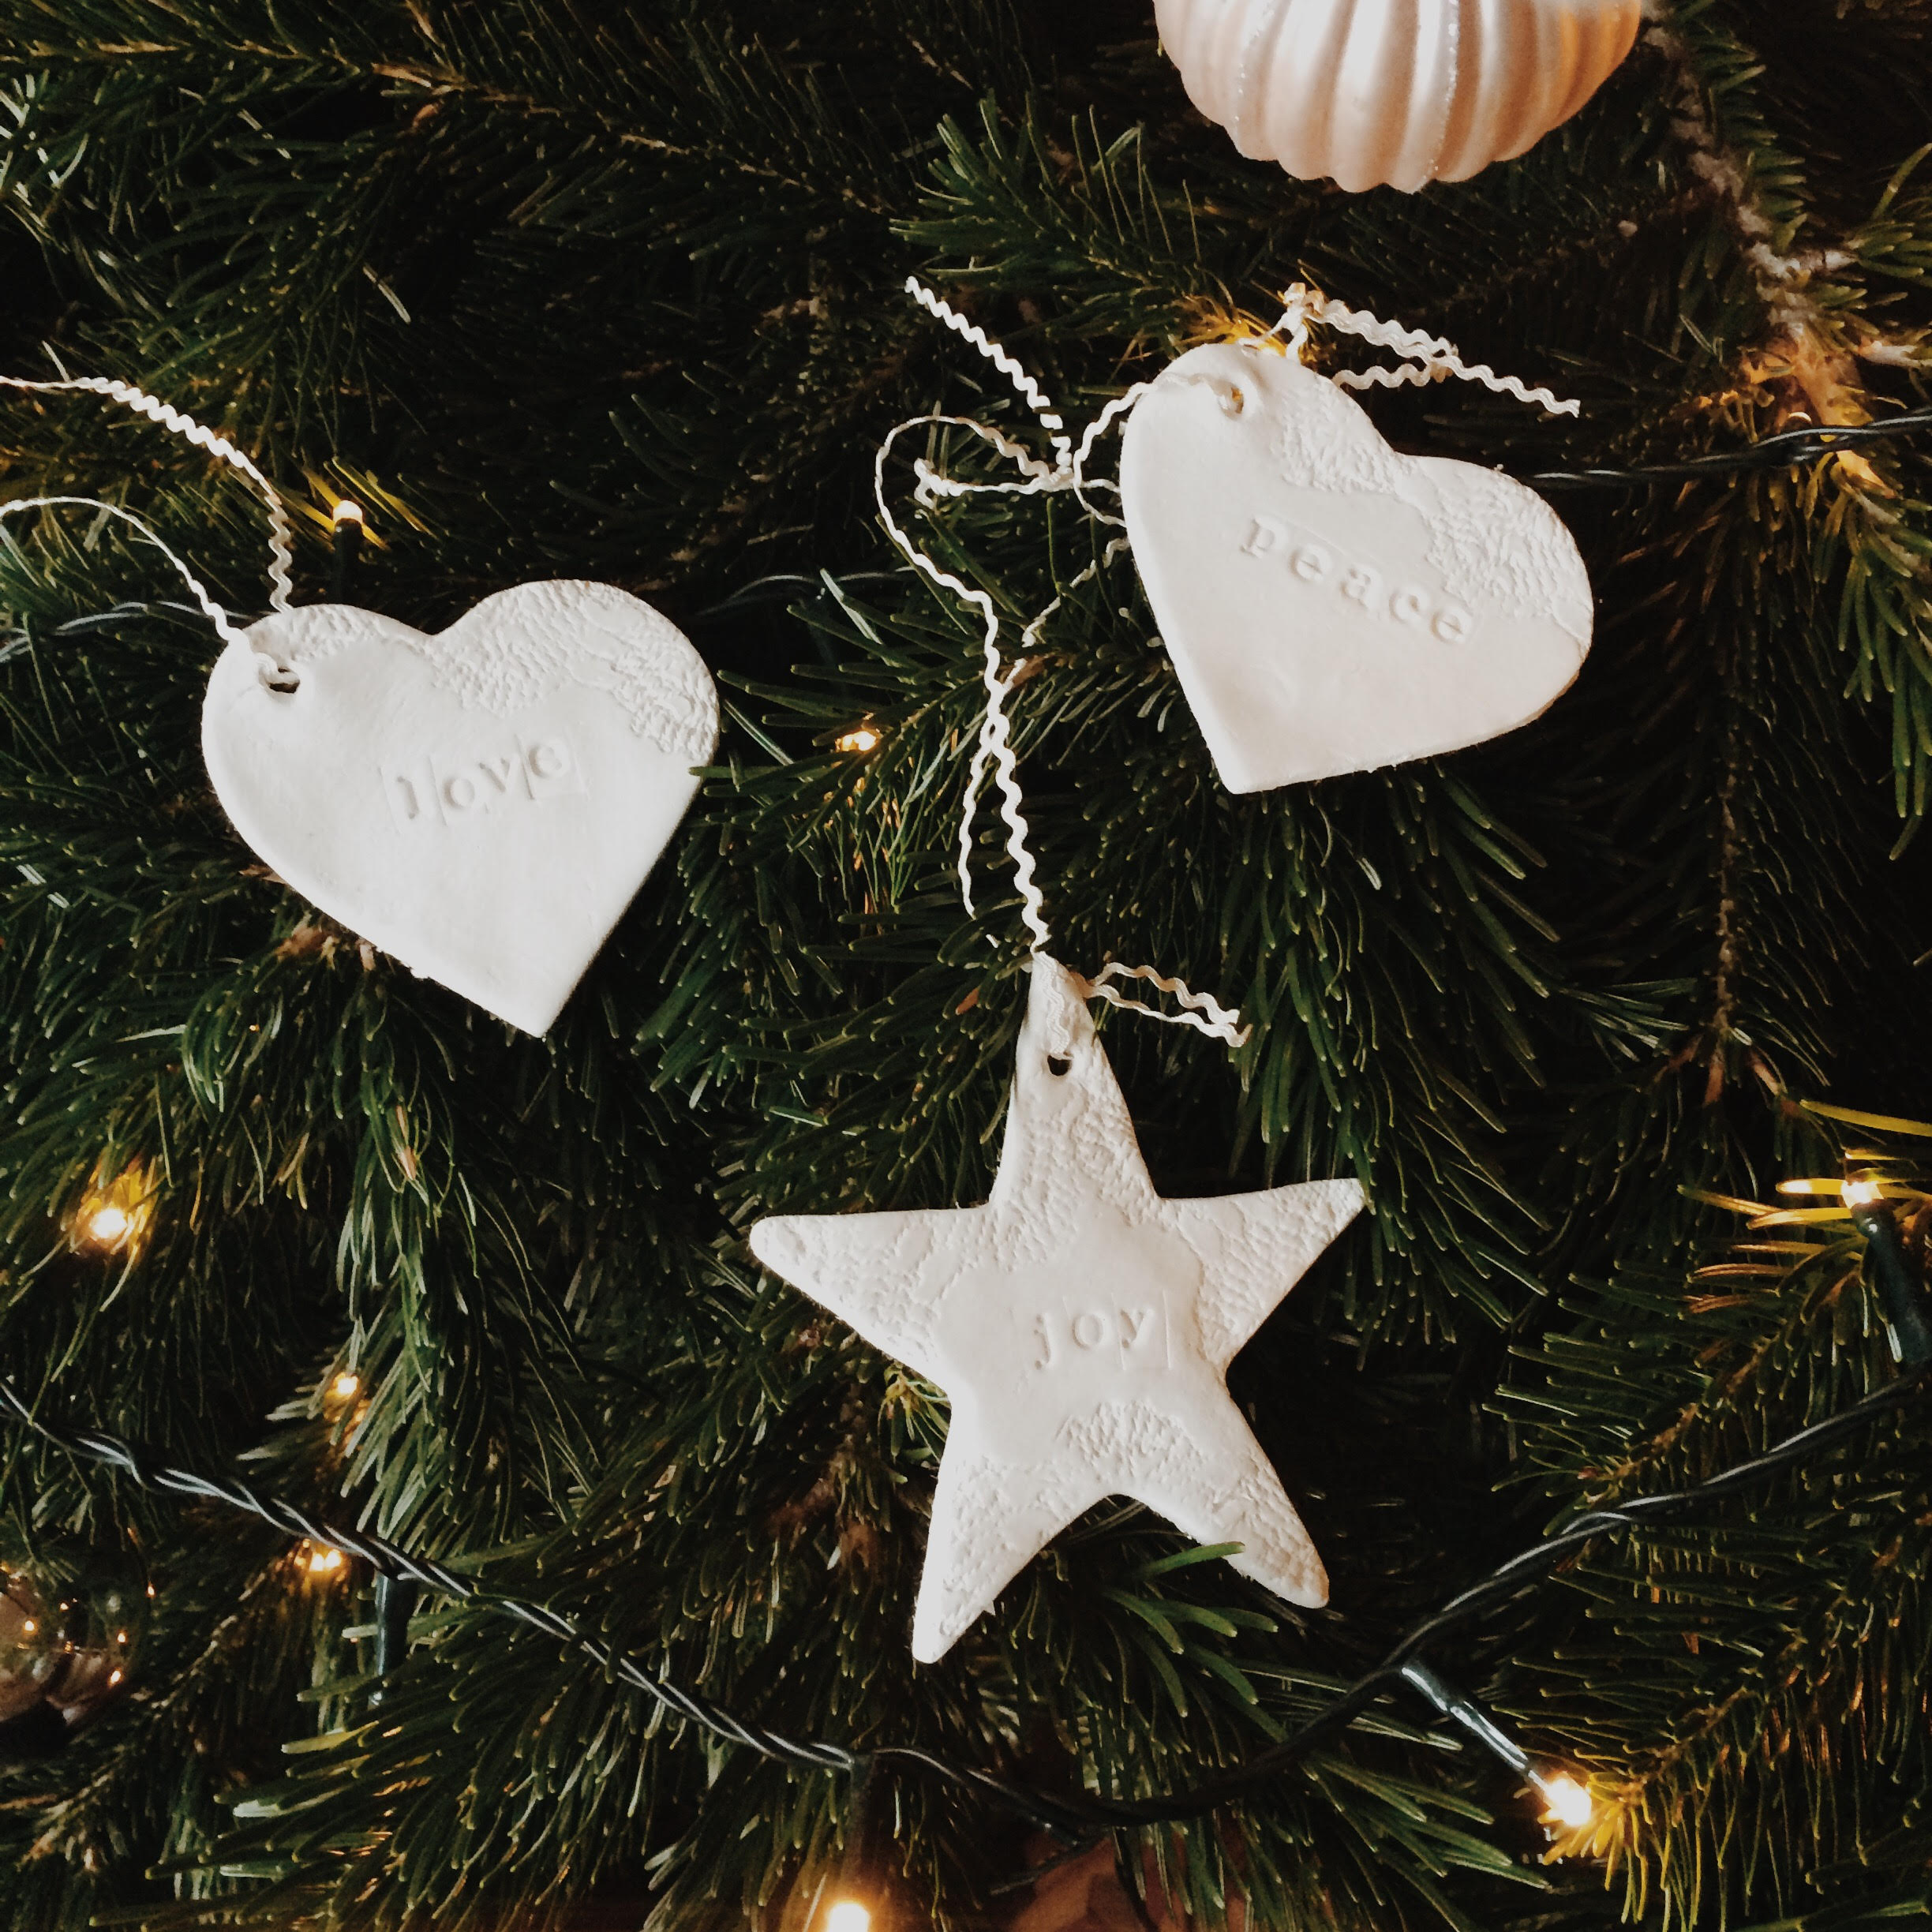 Handmade Personalised Tree Ornaments The Sparkle Nest